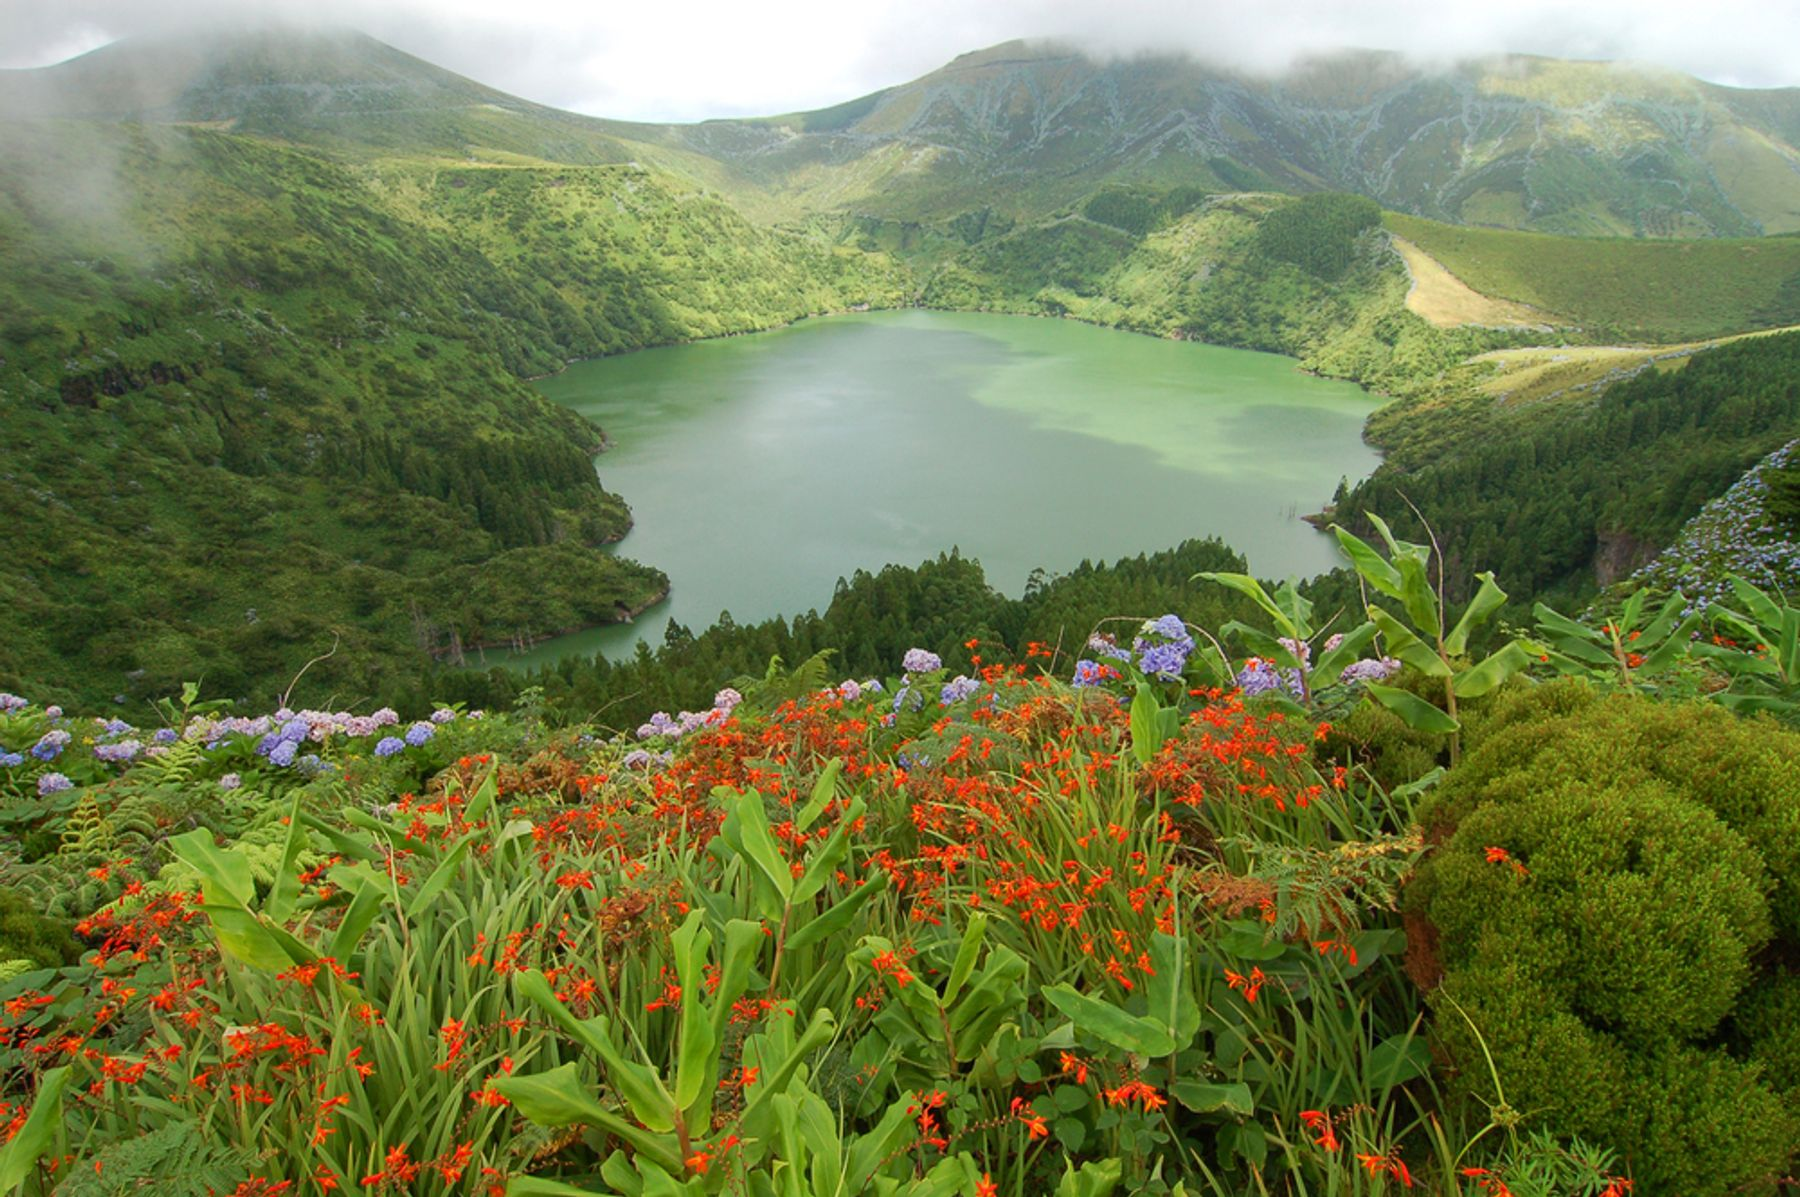 Picture shows a natural lake in the Azores, taken from a high viewpoint overlooking the lake, with brightly coloured red, purple and green plants and flowers in the foreground. The sun is shining but there is fog over the lake and you can see lush forests surrounding it.